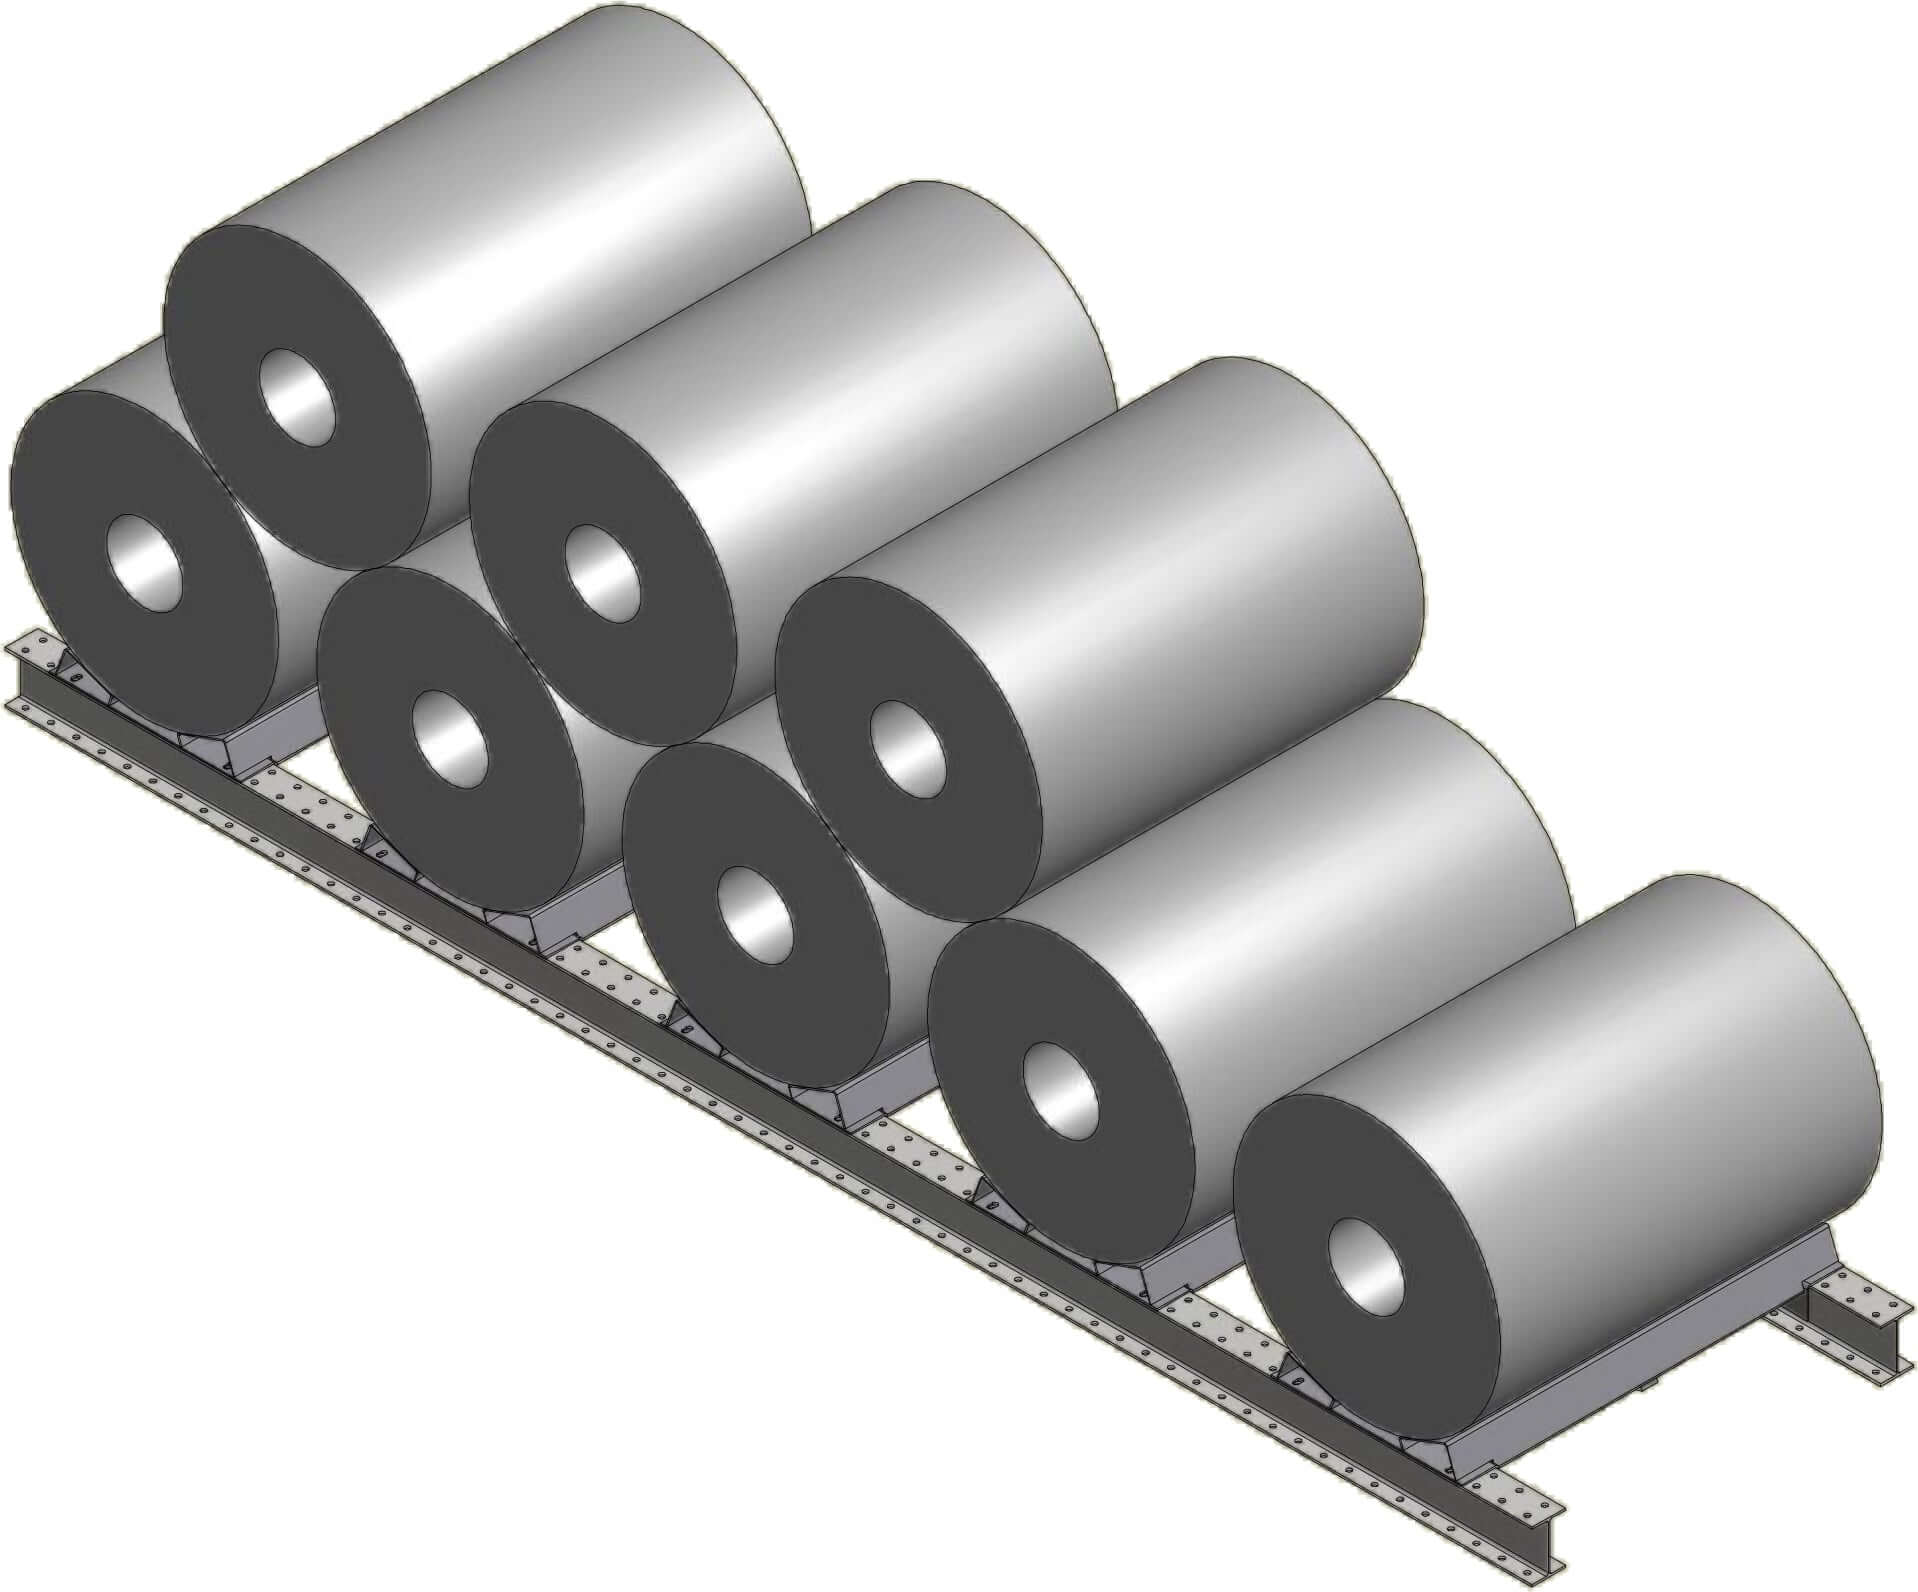 Steel Coil Stands : Dexco structural i beam coil rack systems ross technology